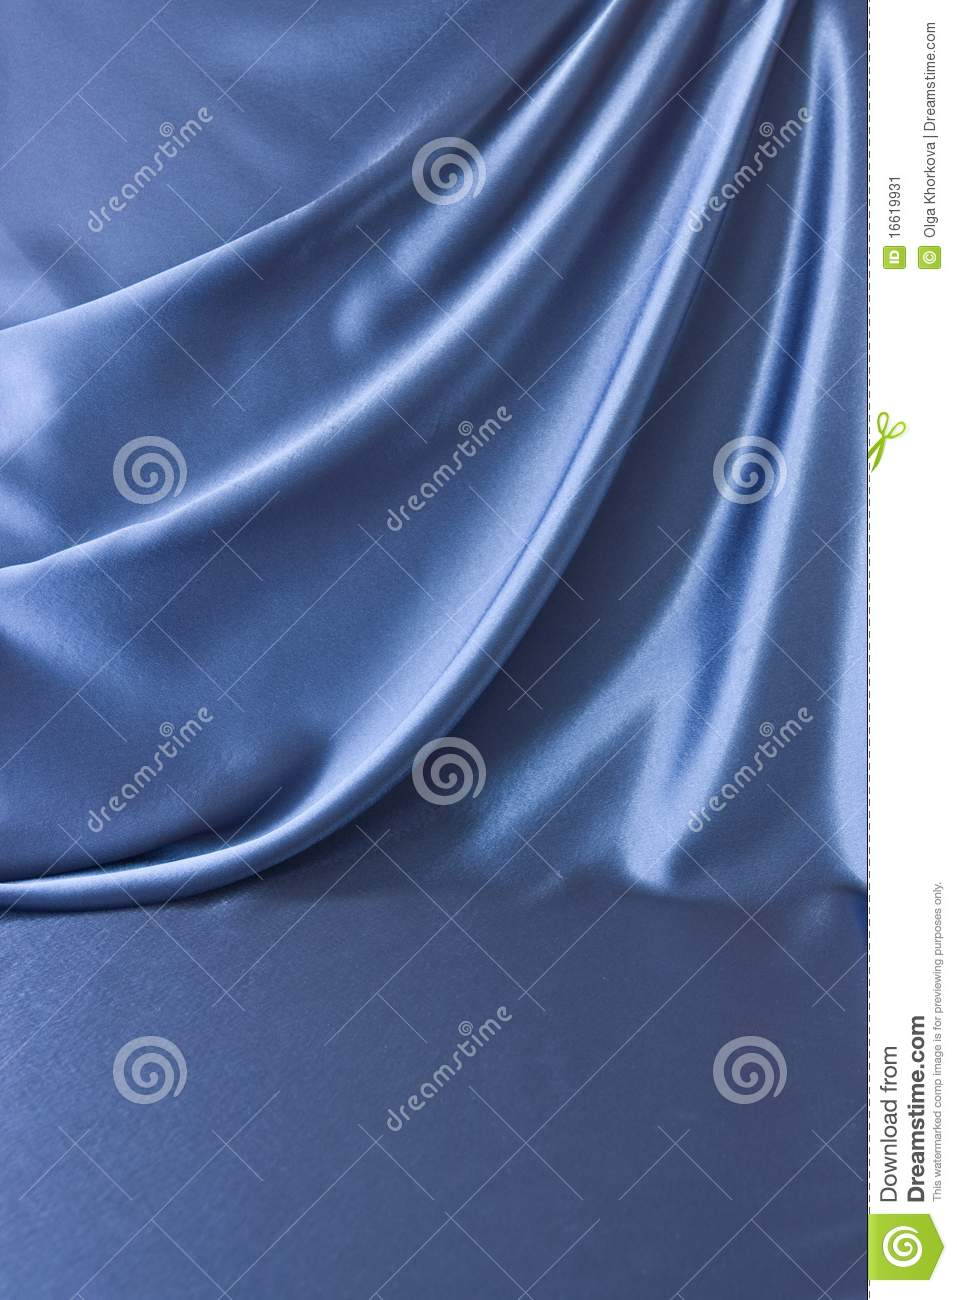 Satin background; place for your object